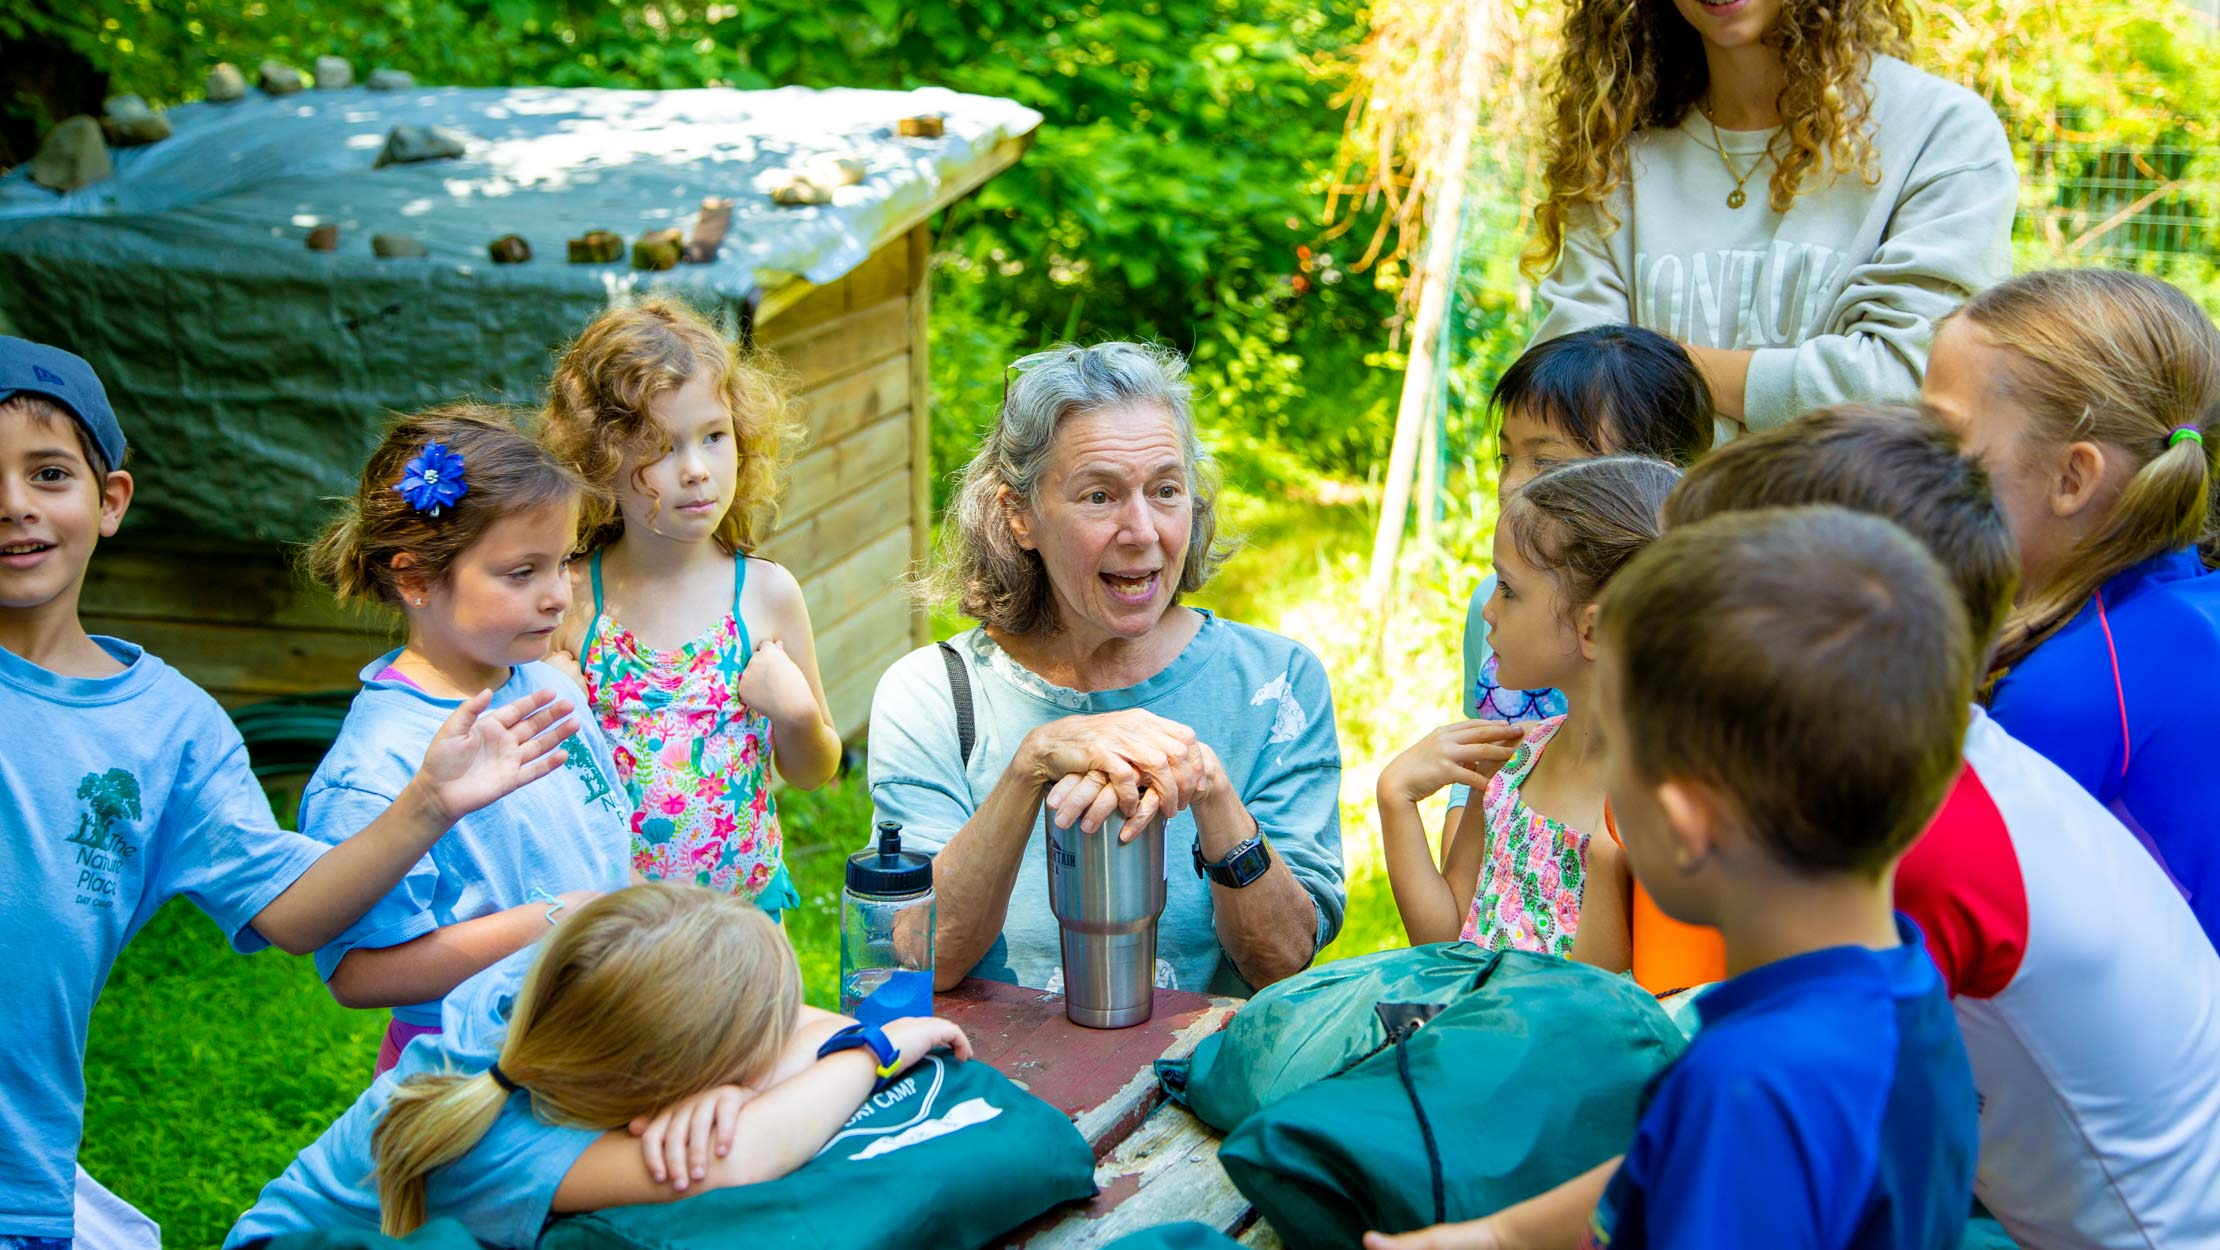 Campers gathered around a counselor listening